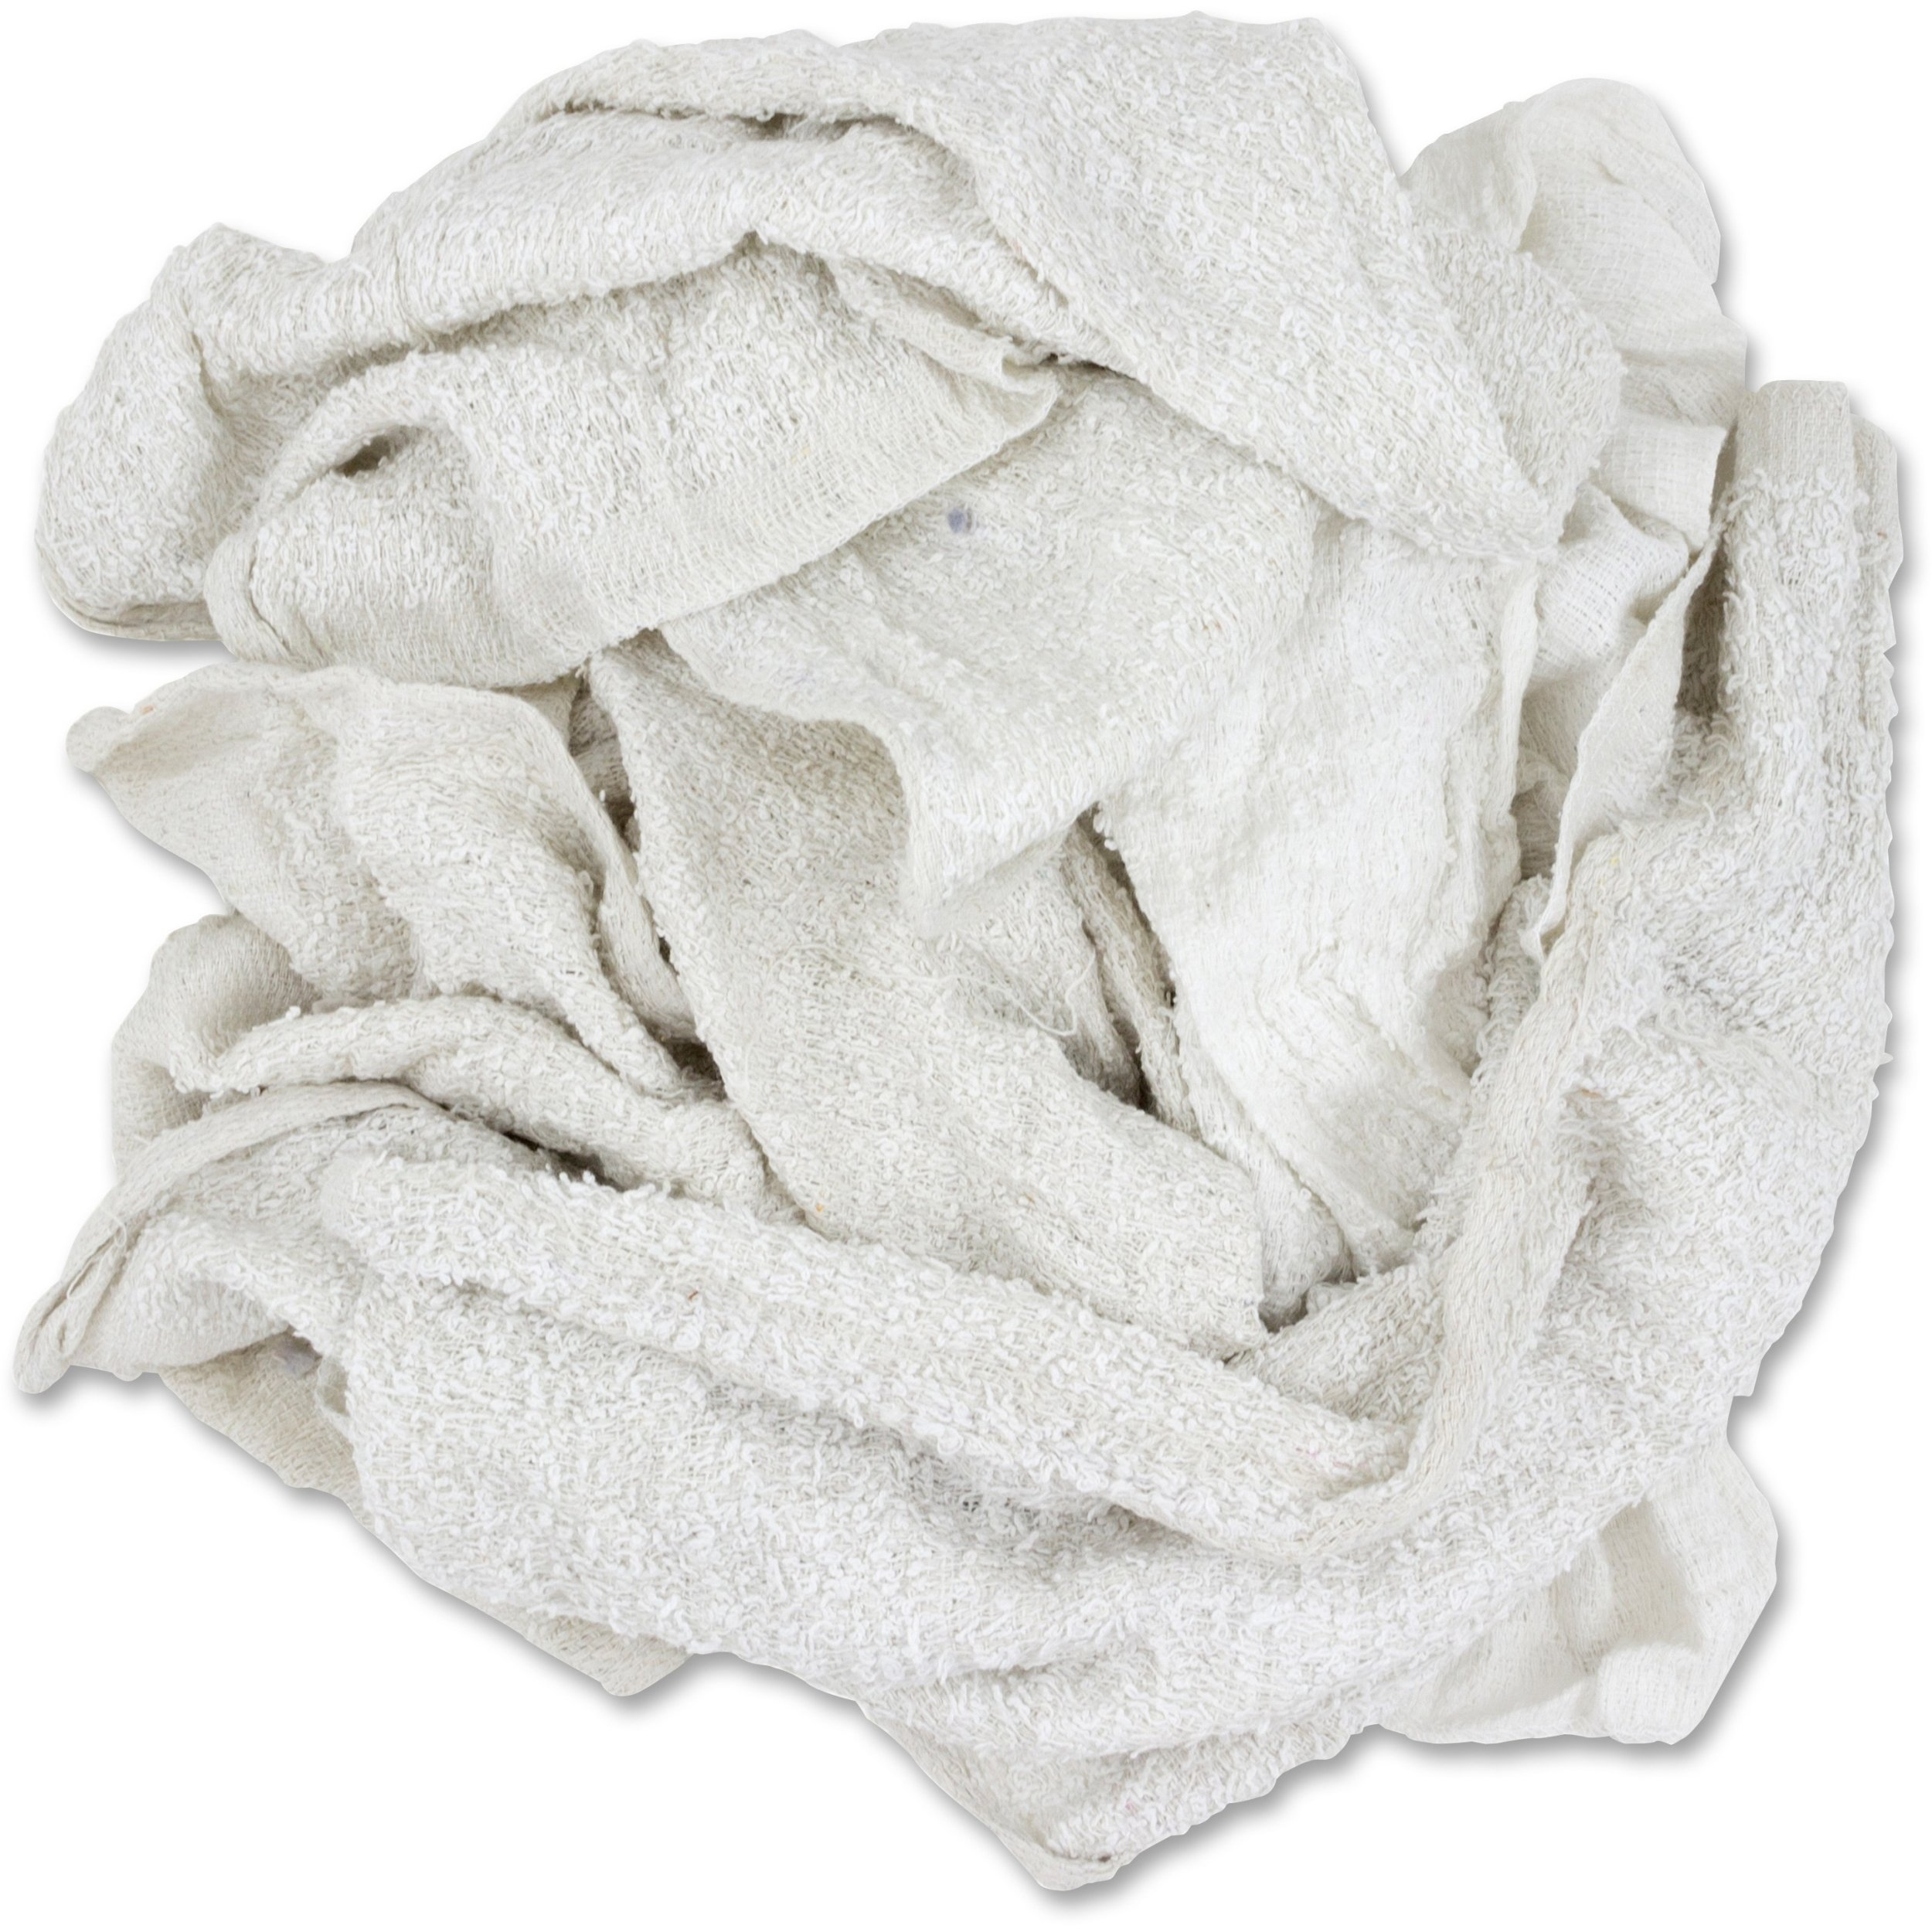 The Tranzonic Companies Dba Hos 537-25 Terry Towel Rags White 25 Lbs HOS 537-25 by NuTrend